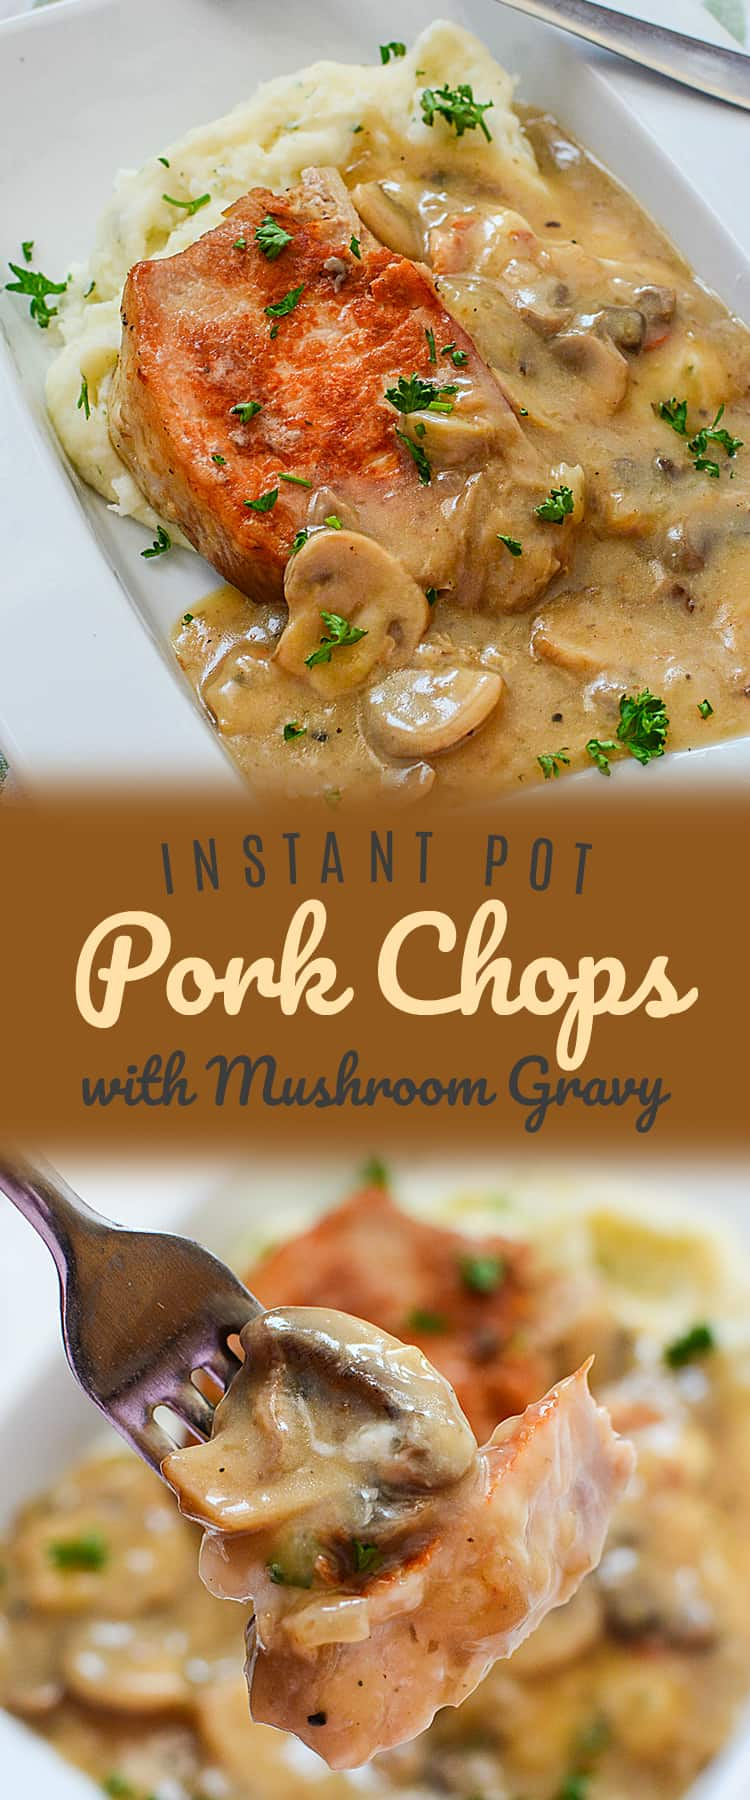 This Instant Pot Pork Chops recipe just may become your favourite pork chop recipe altogether. With a seared outside and a tender middle, the meat is smothered in a delicious mushroom gravy. Ideal for busy nights when we're short on time but still want a homemade dinner that's quick and easy.